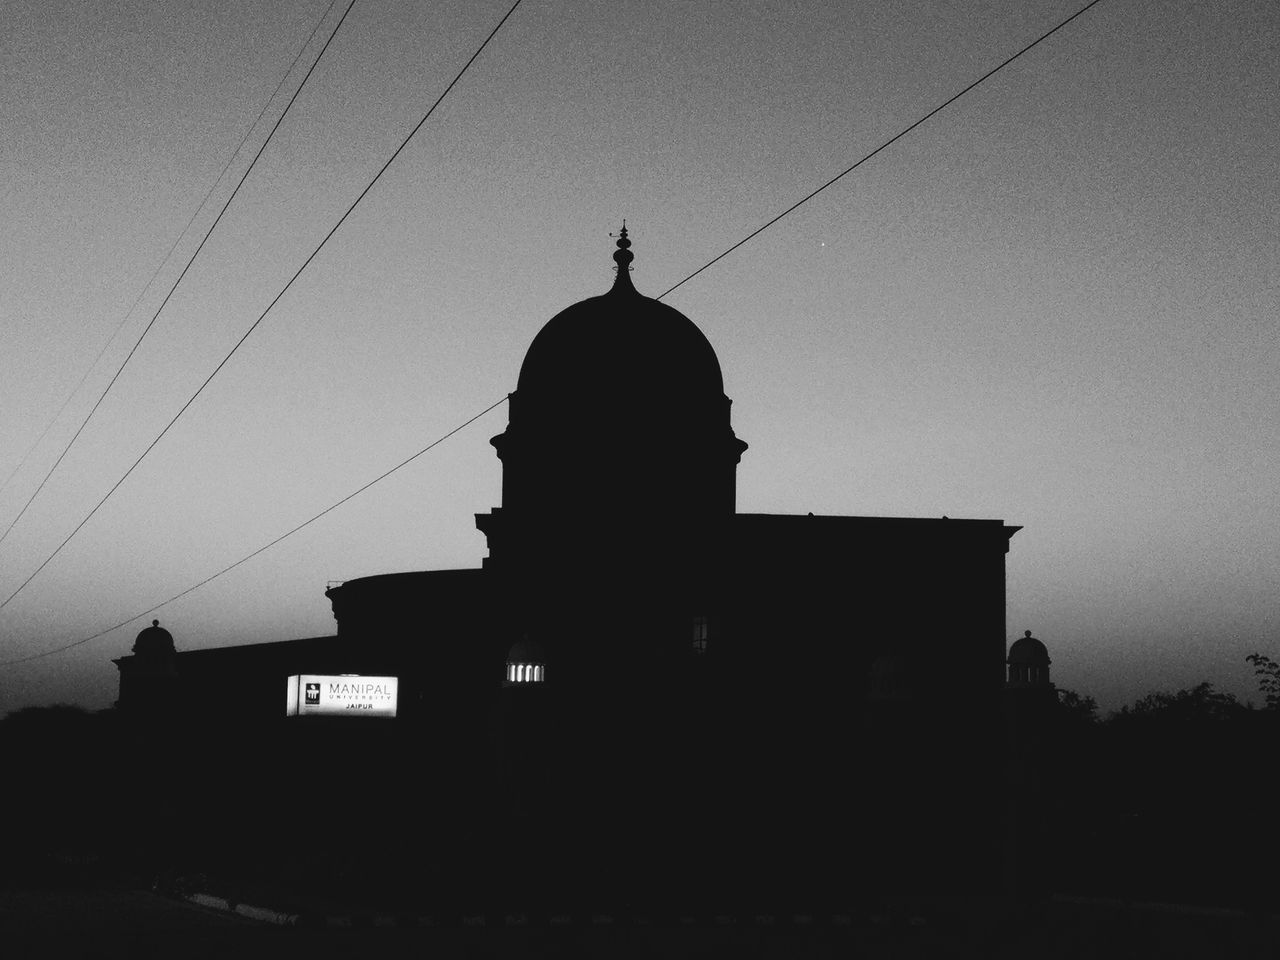 Silhouette Architecture Dawn Oneplus3photography EyeEm EyeEm Gallery Morning View EyeEmBestPics EyeEm Best Shots Black And White Photography B&W Collections